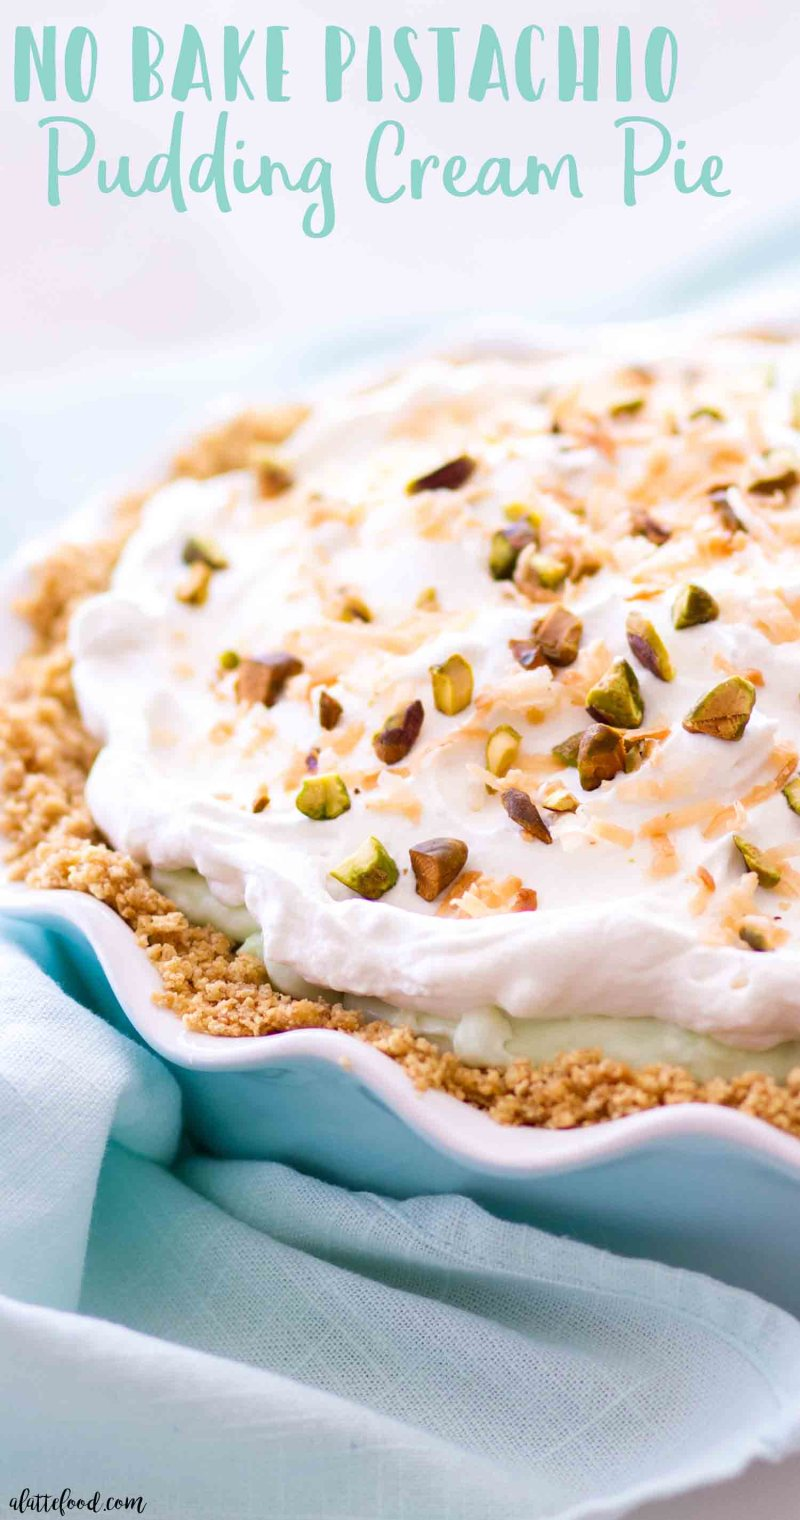 This easy no bake pistachio pudding cream pie is our favorite St. Patrick's Day dessert or Easter dessert.